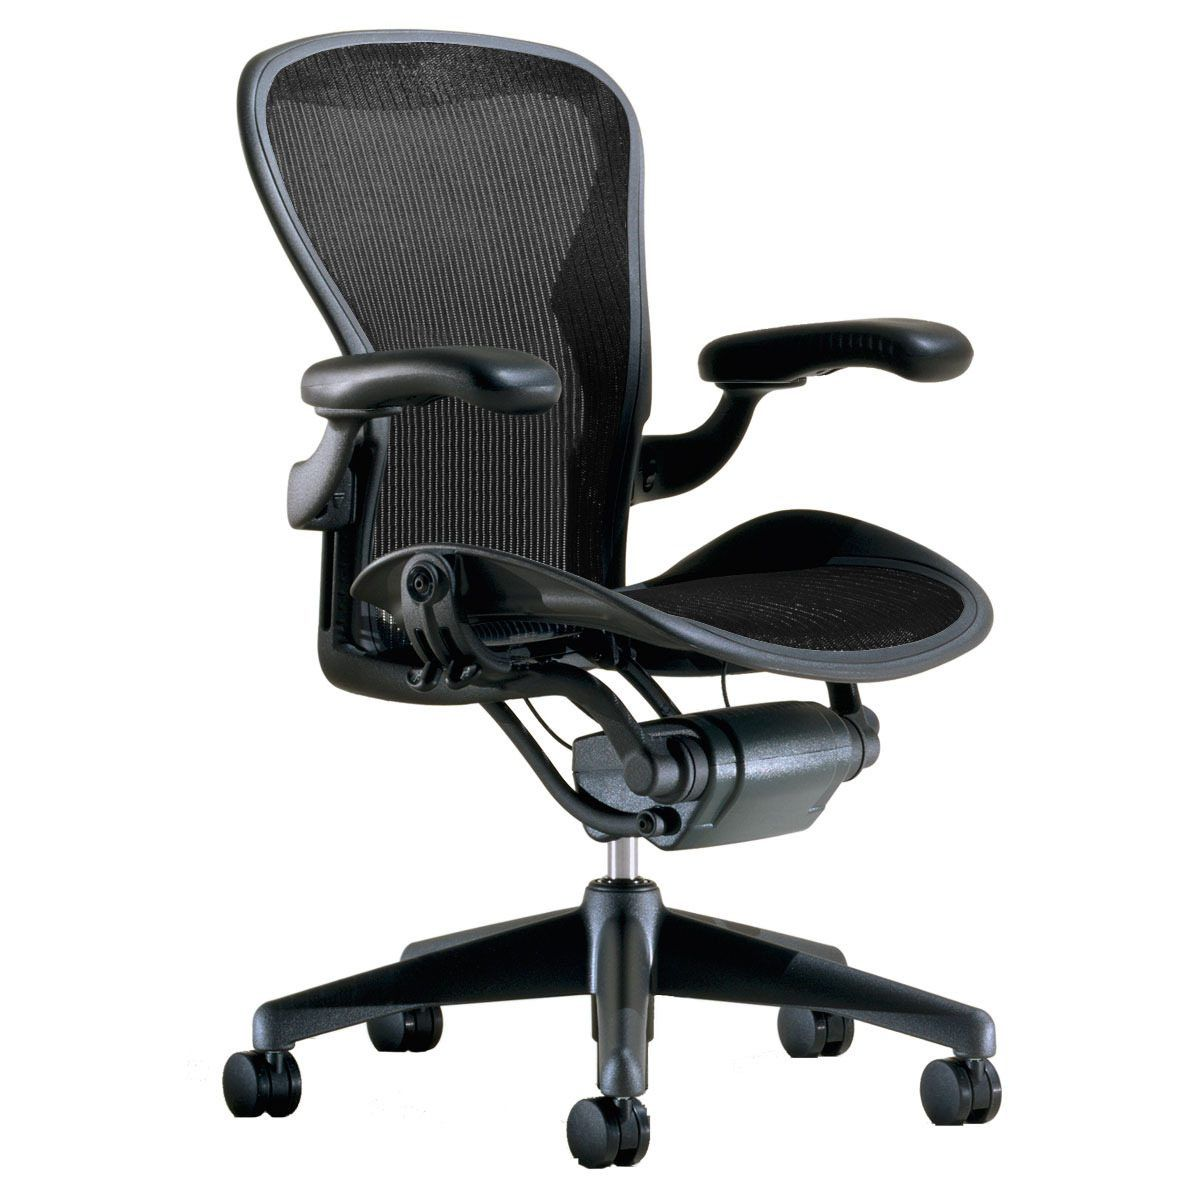 consumer reports office chairs wicker kitchen pin oleh luciver sanom di desk exclusive ideas home ashley furniture check more at http